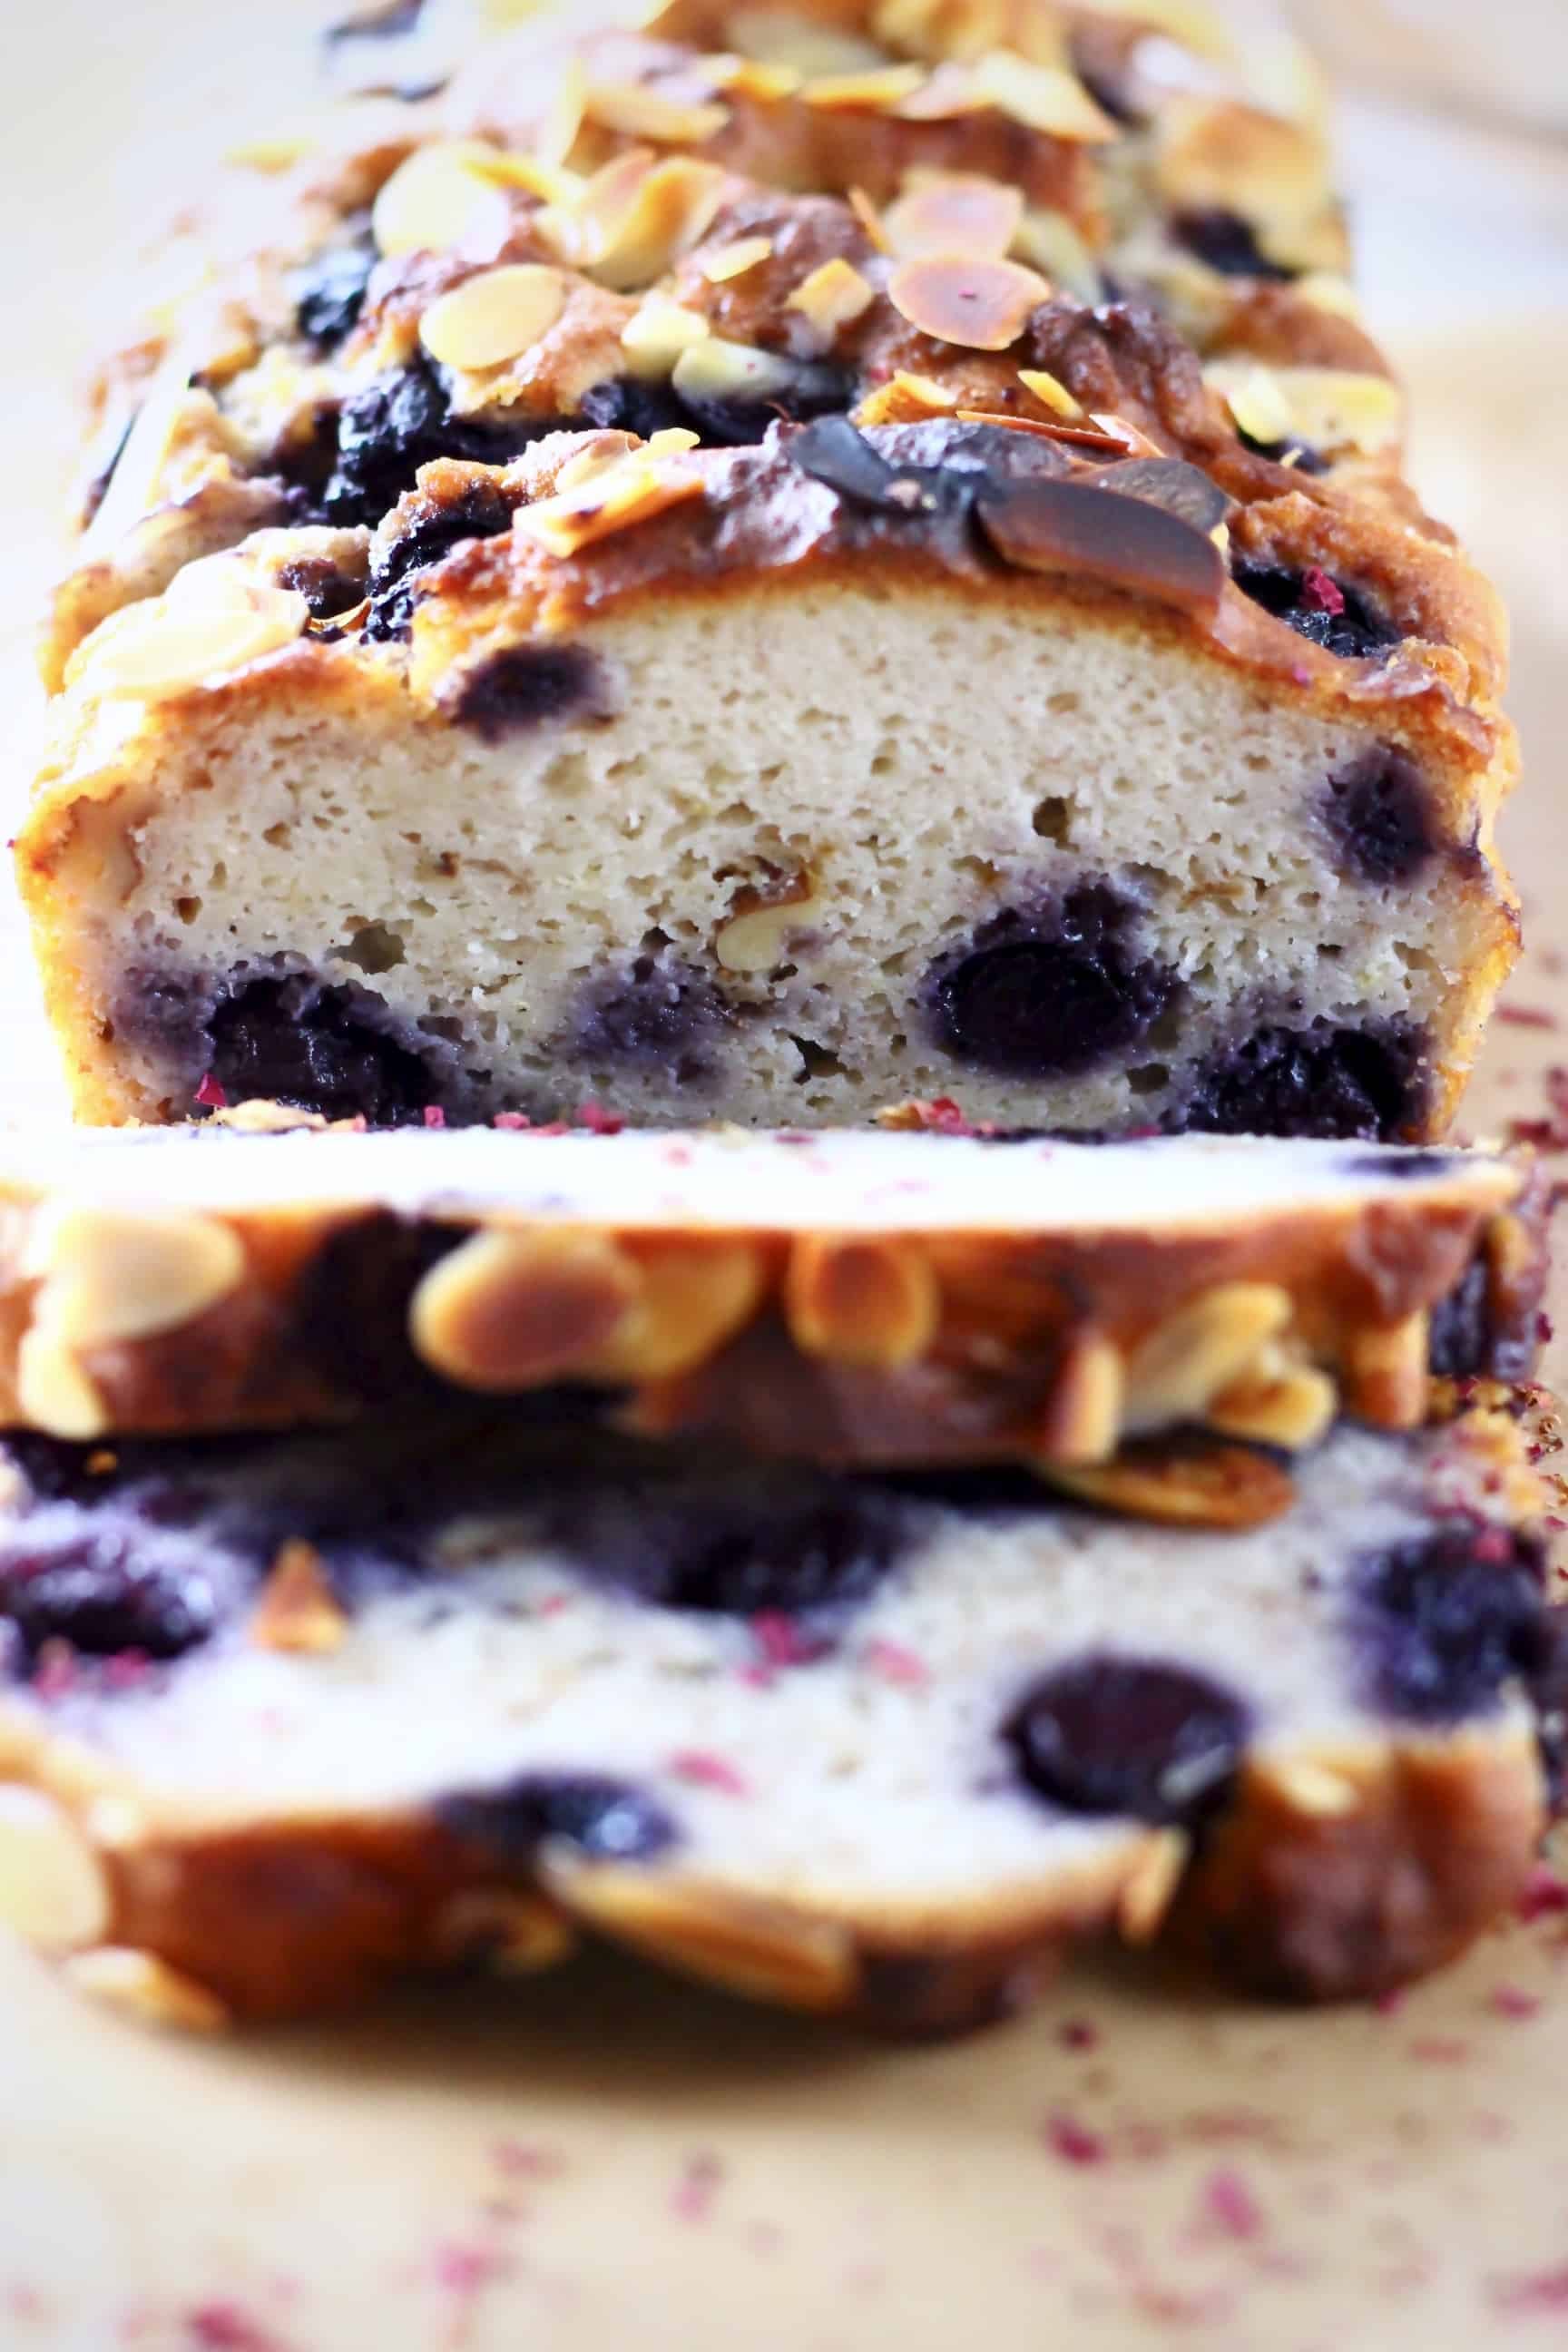 A loaf of gluten-free vegan blueberry banana bread with three slices cut